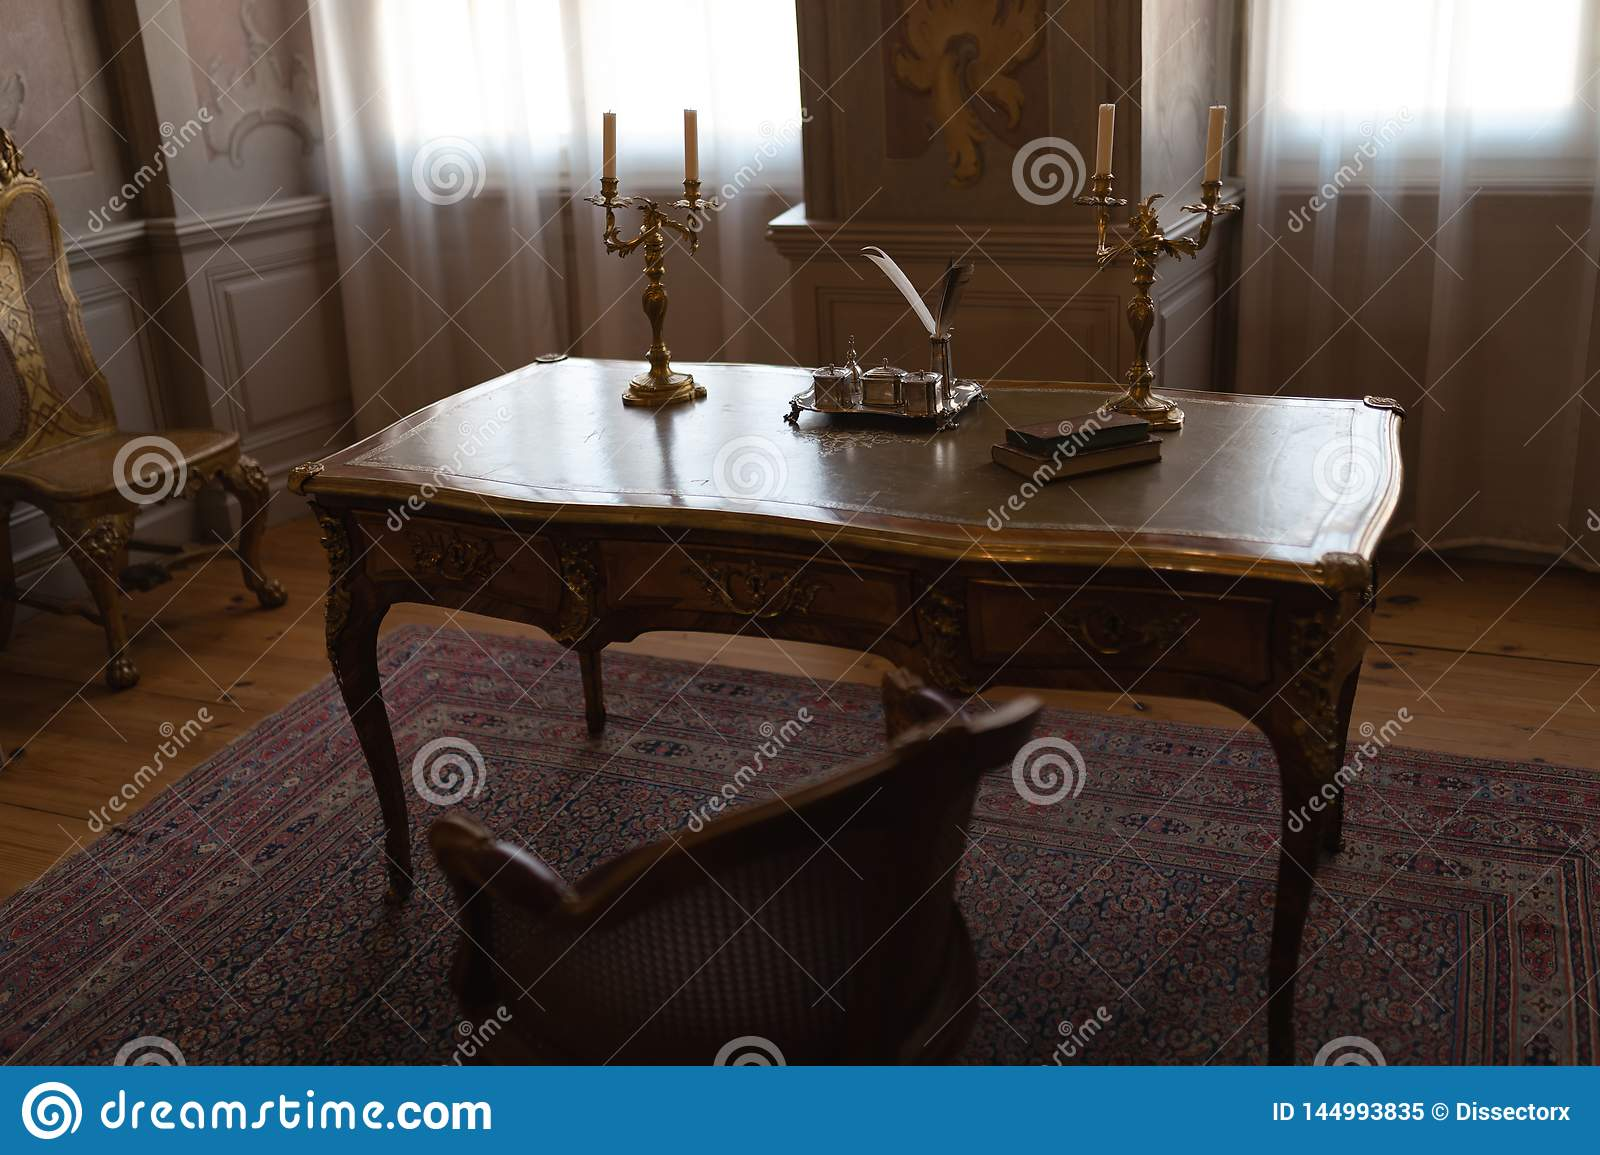 Royal palace table in a cabinet room with chairs and pen and ink